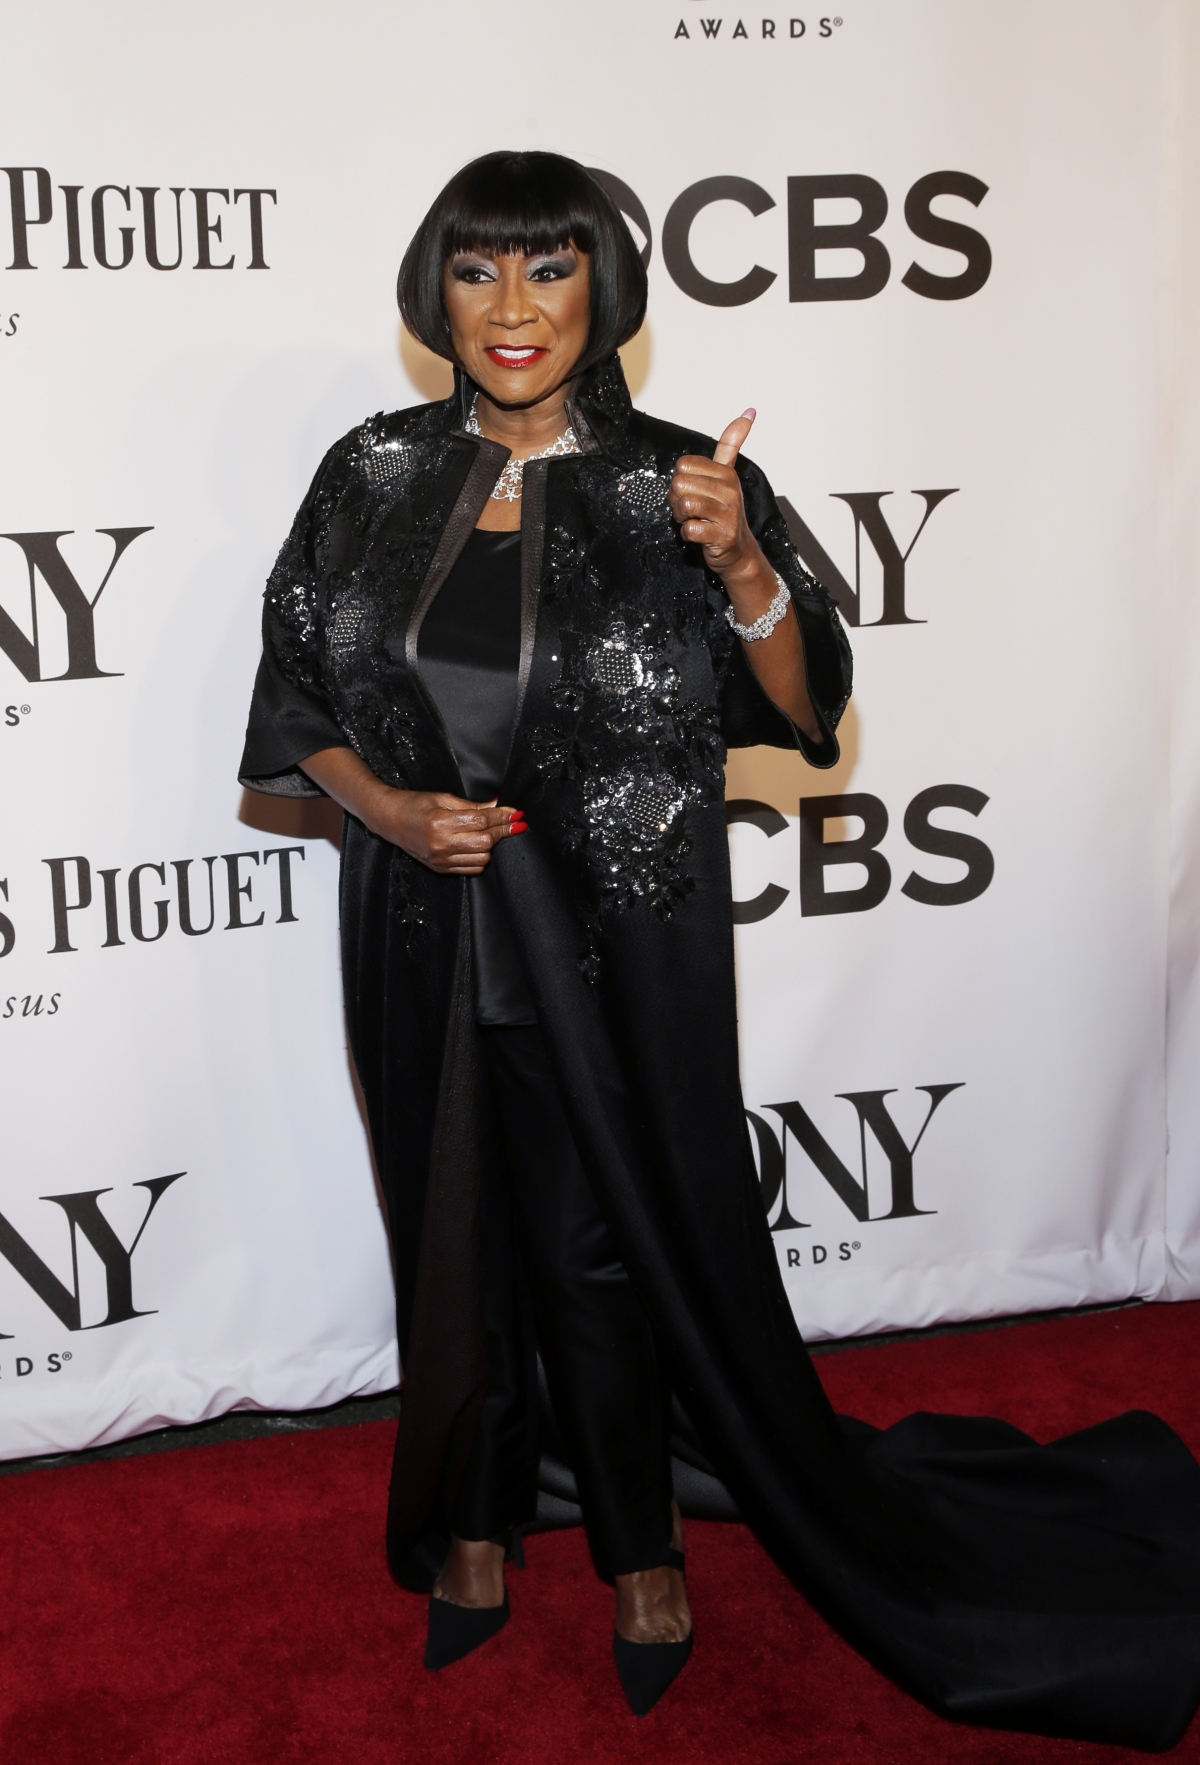 Singer Patti Labelle arrives for the American Theatre Wing's 68th annual Tony Awards at Radio City Music Hall in New York, June 8, 2014.